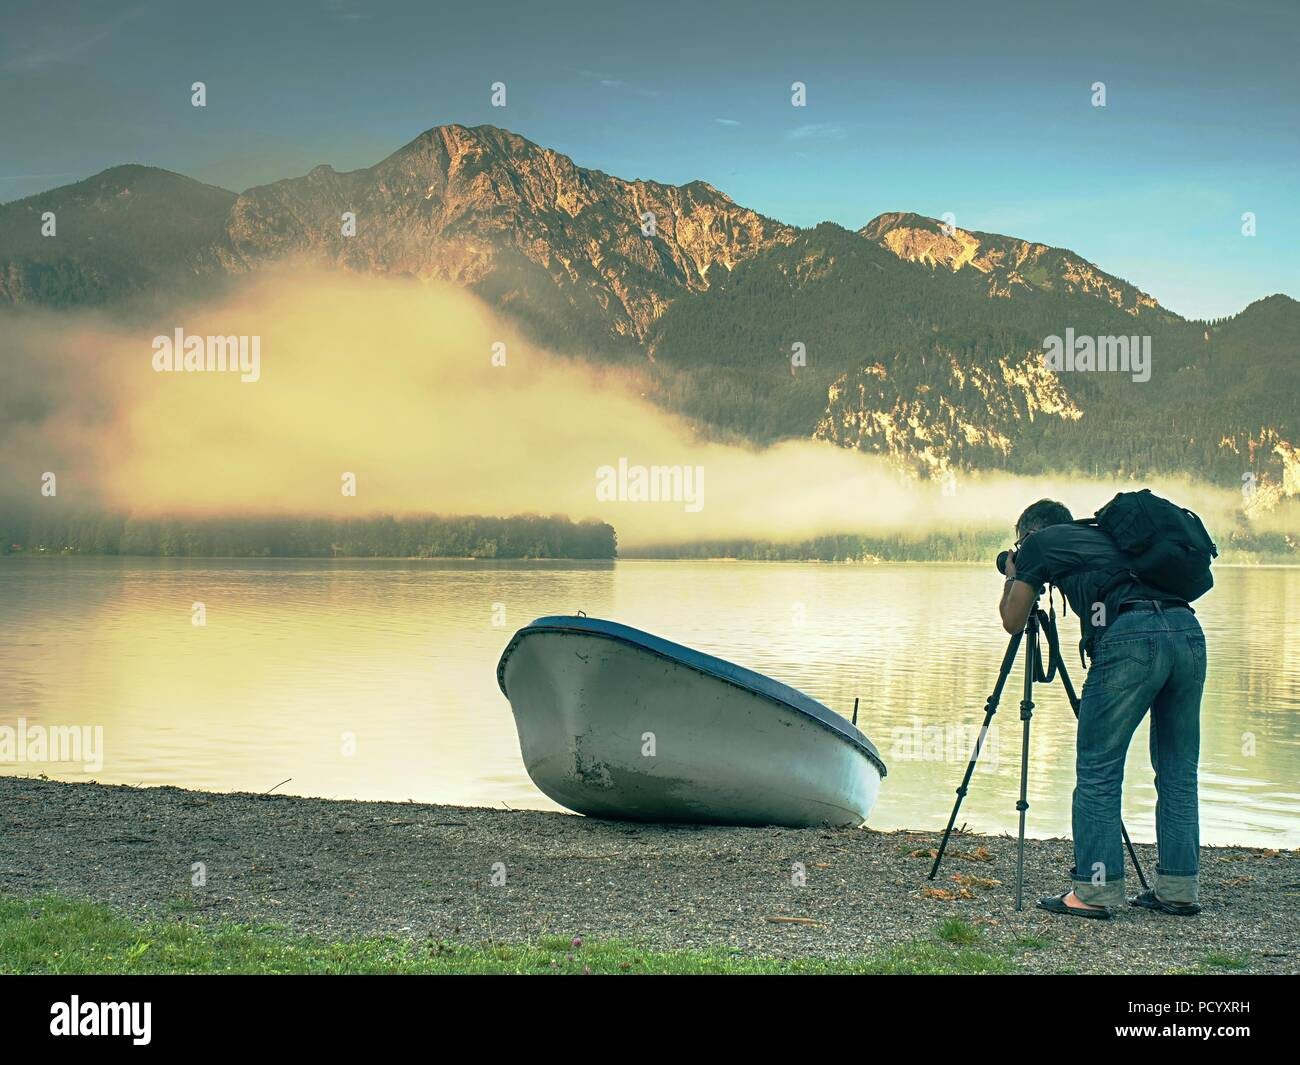 Man hiker is taking photo of ship at mountain lake shore. Silhouette at fishing paddle boat at lake coast. - Stock Image